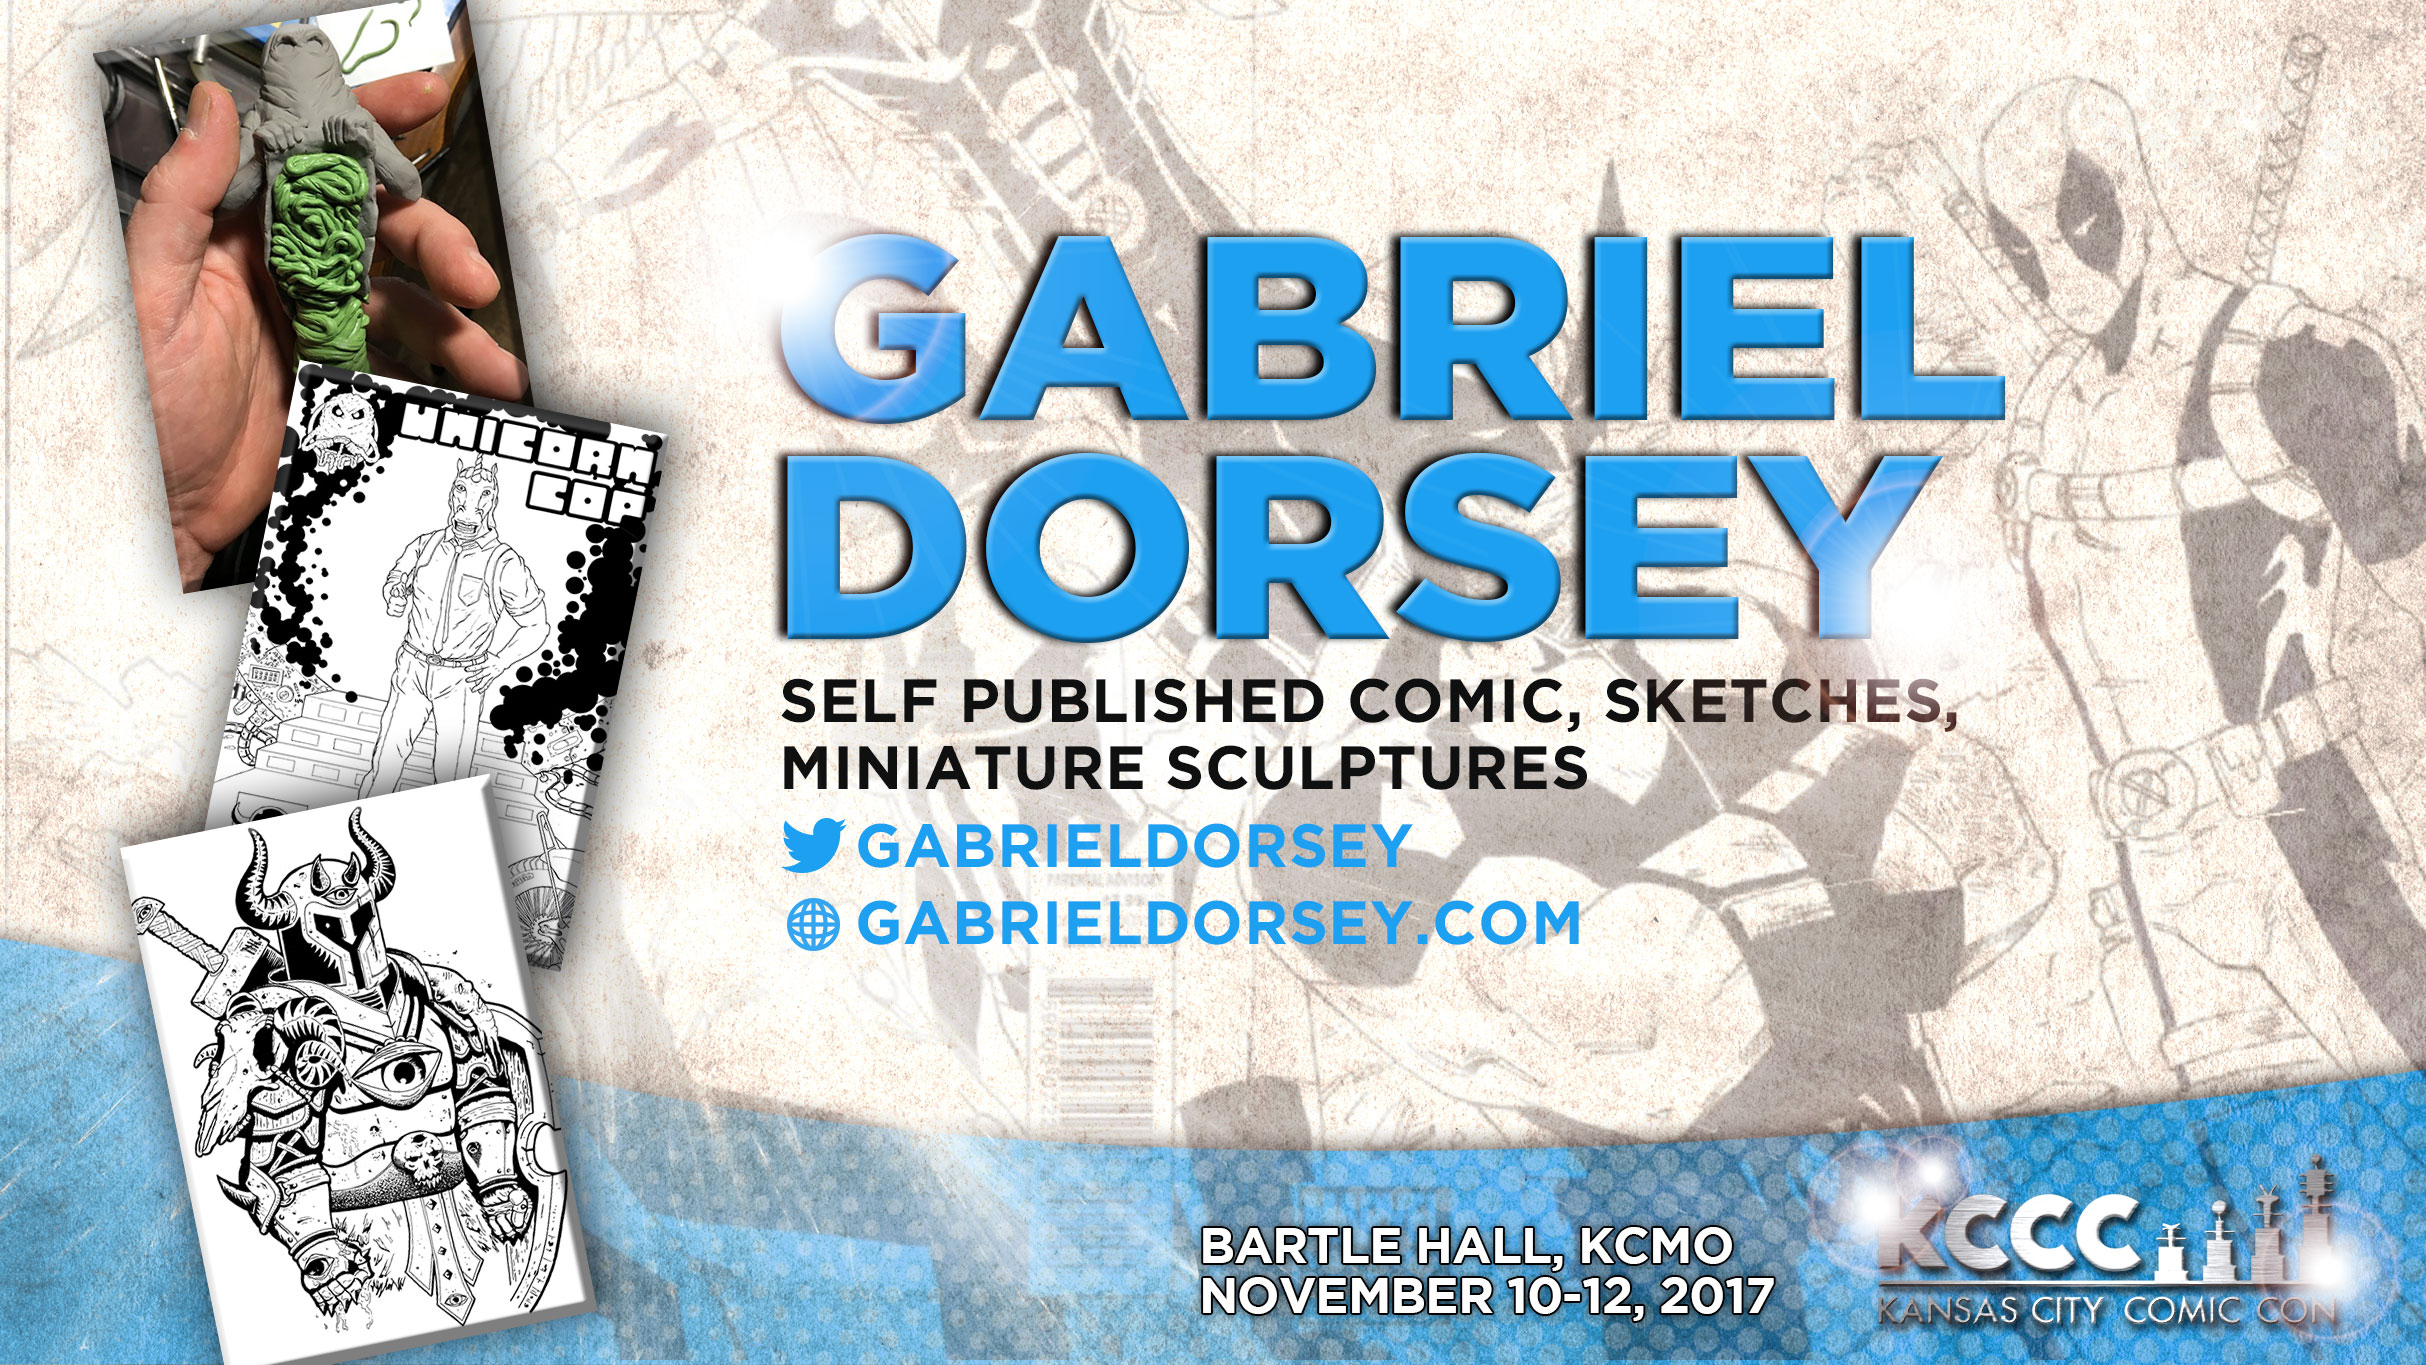 KCCC_ANNOUNCEMENT_Sketch_GabrielDorsey.jpg